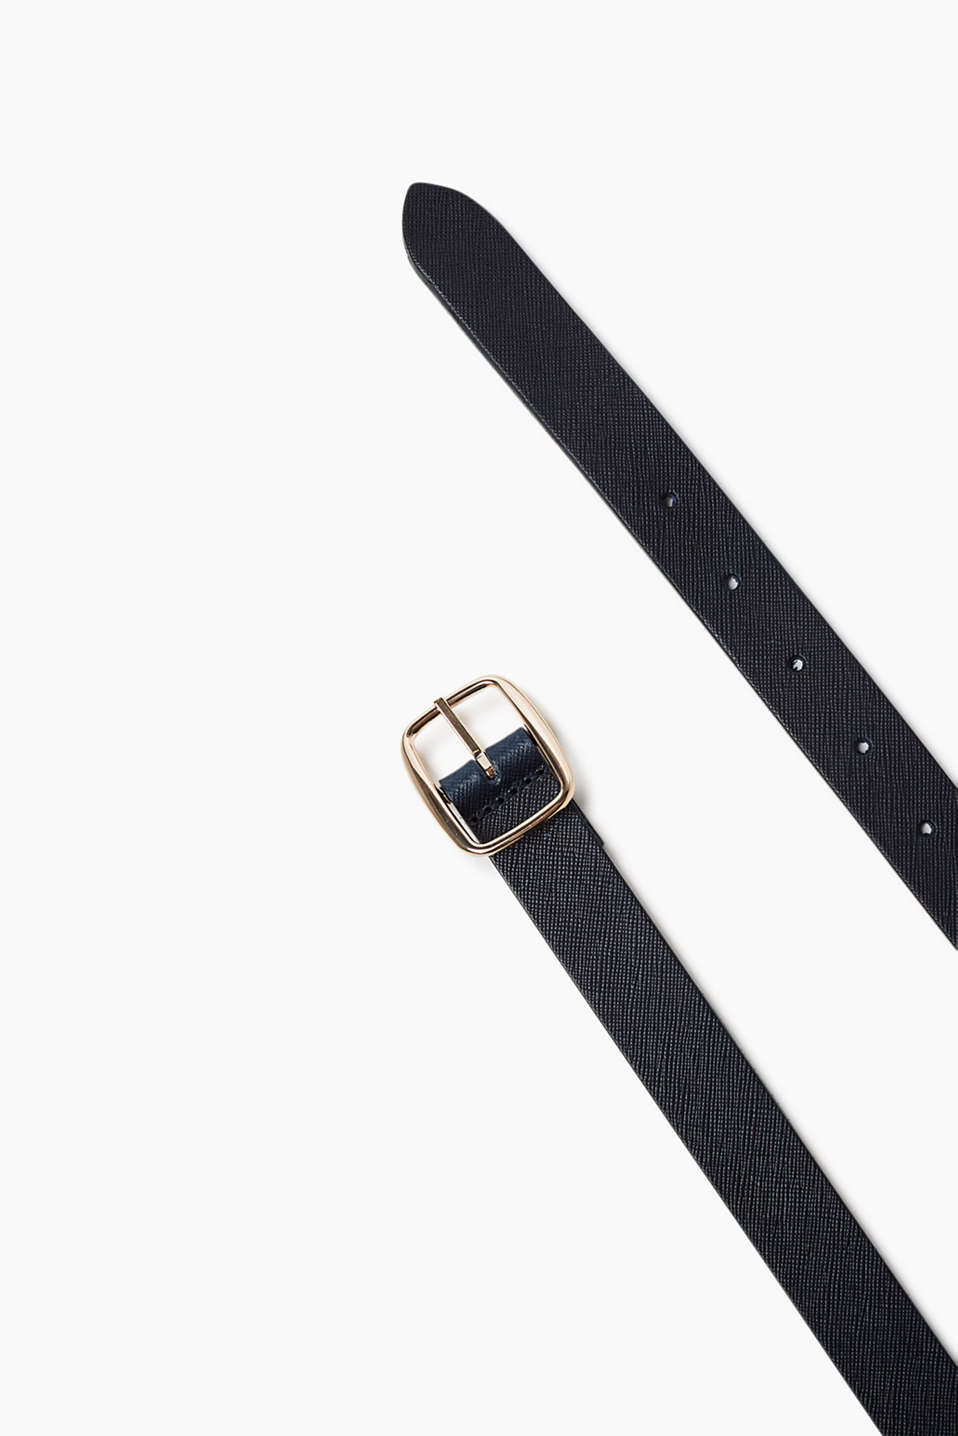 Belt in robust cowhide with a narrow, highly polished metal buckle